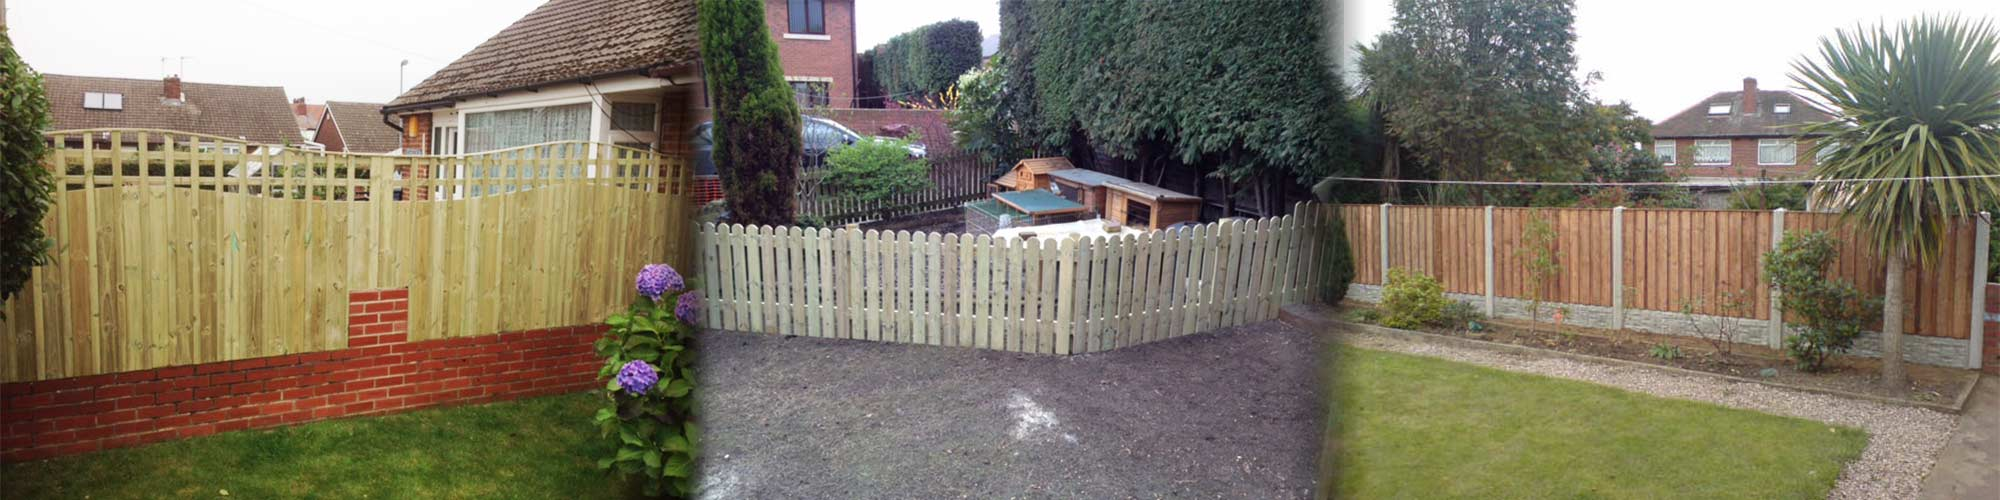 Fencing & Decking Intallation Leeds